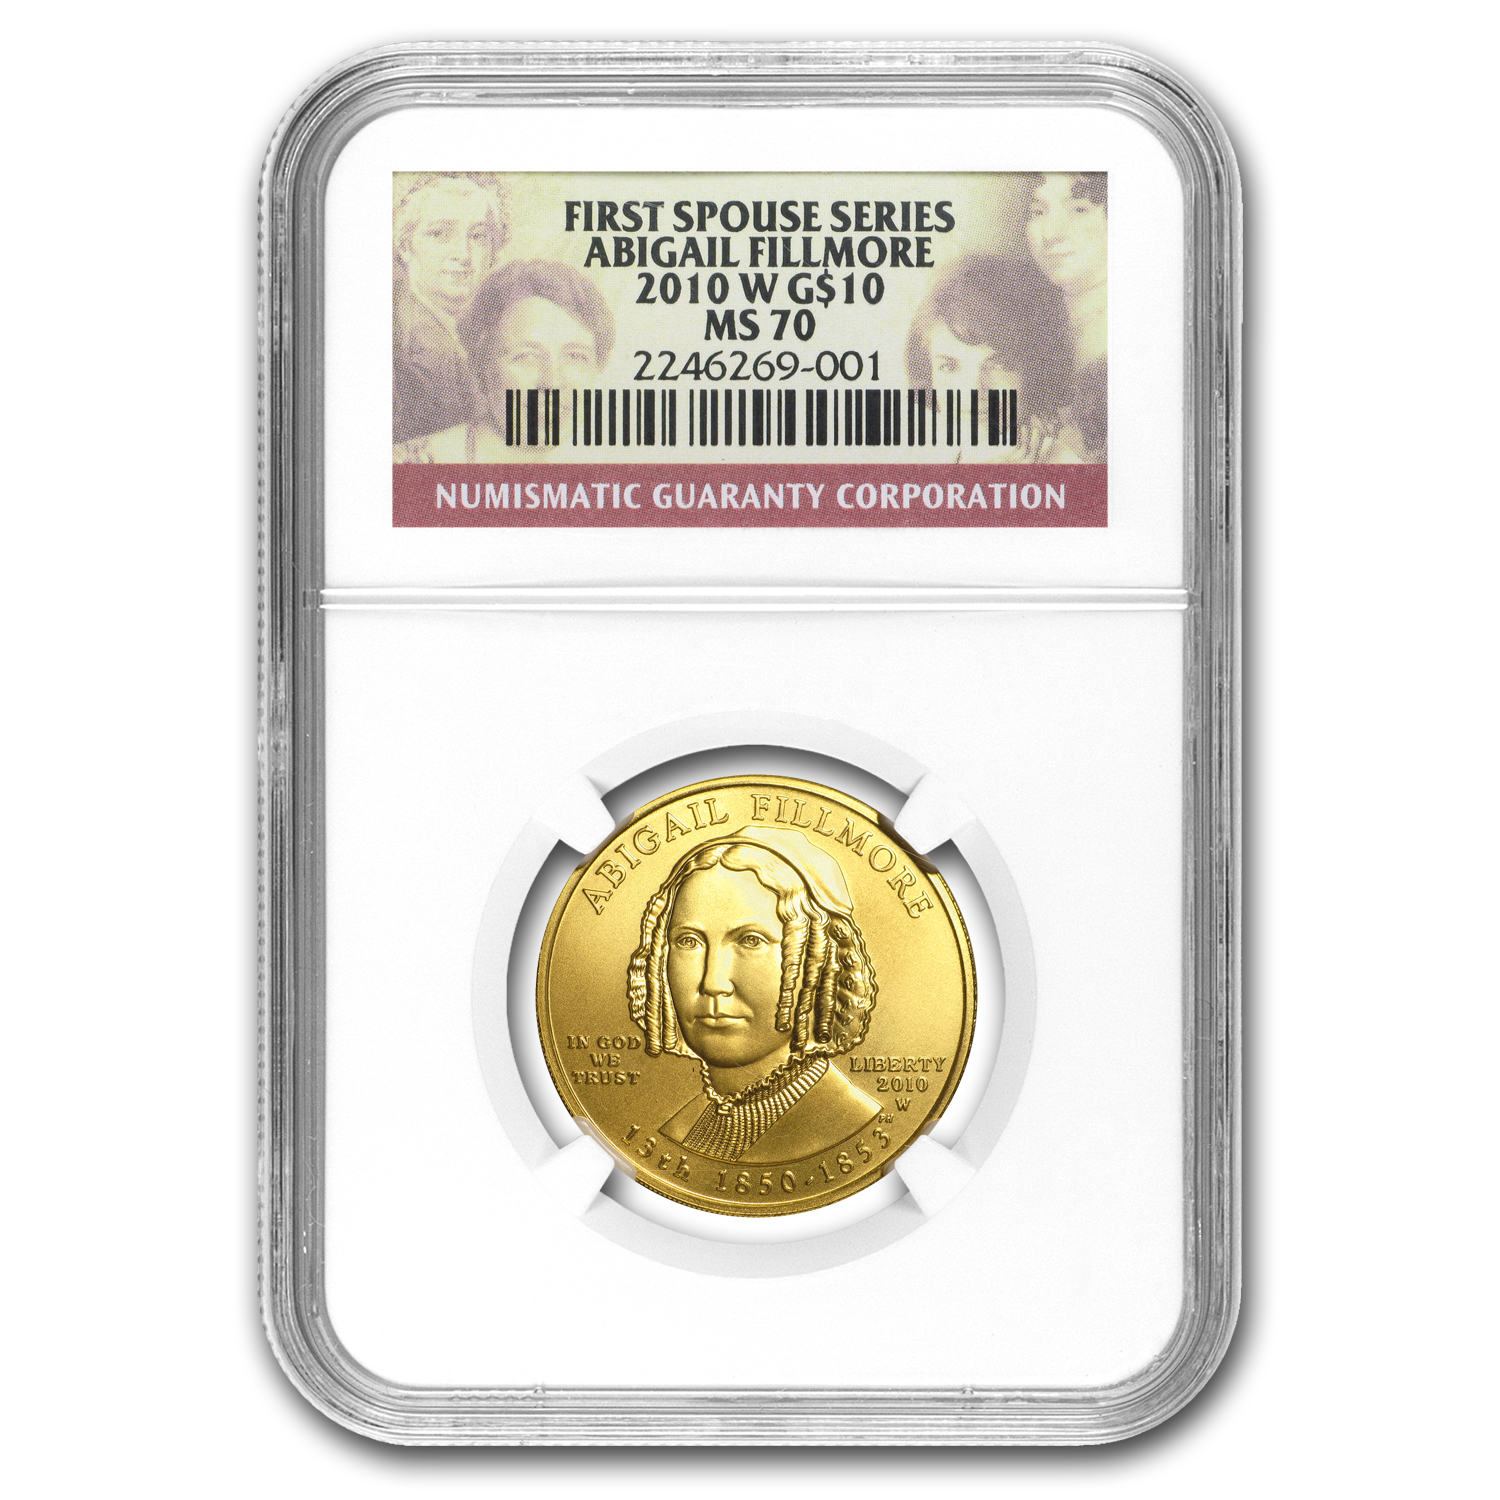 2010-W 1/2 oz Gold Abigail Fillmore MS-70 NGC